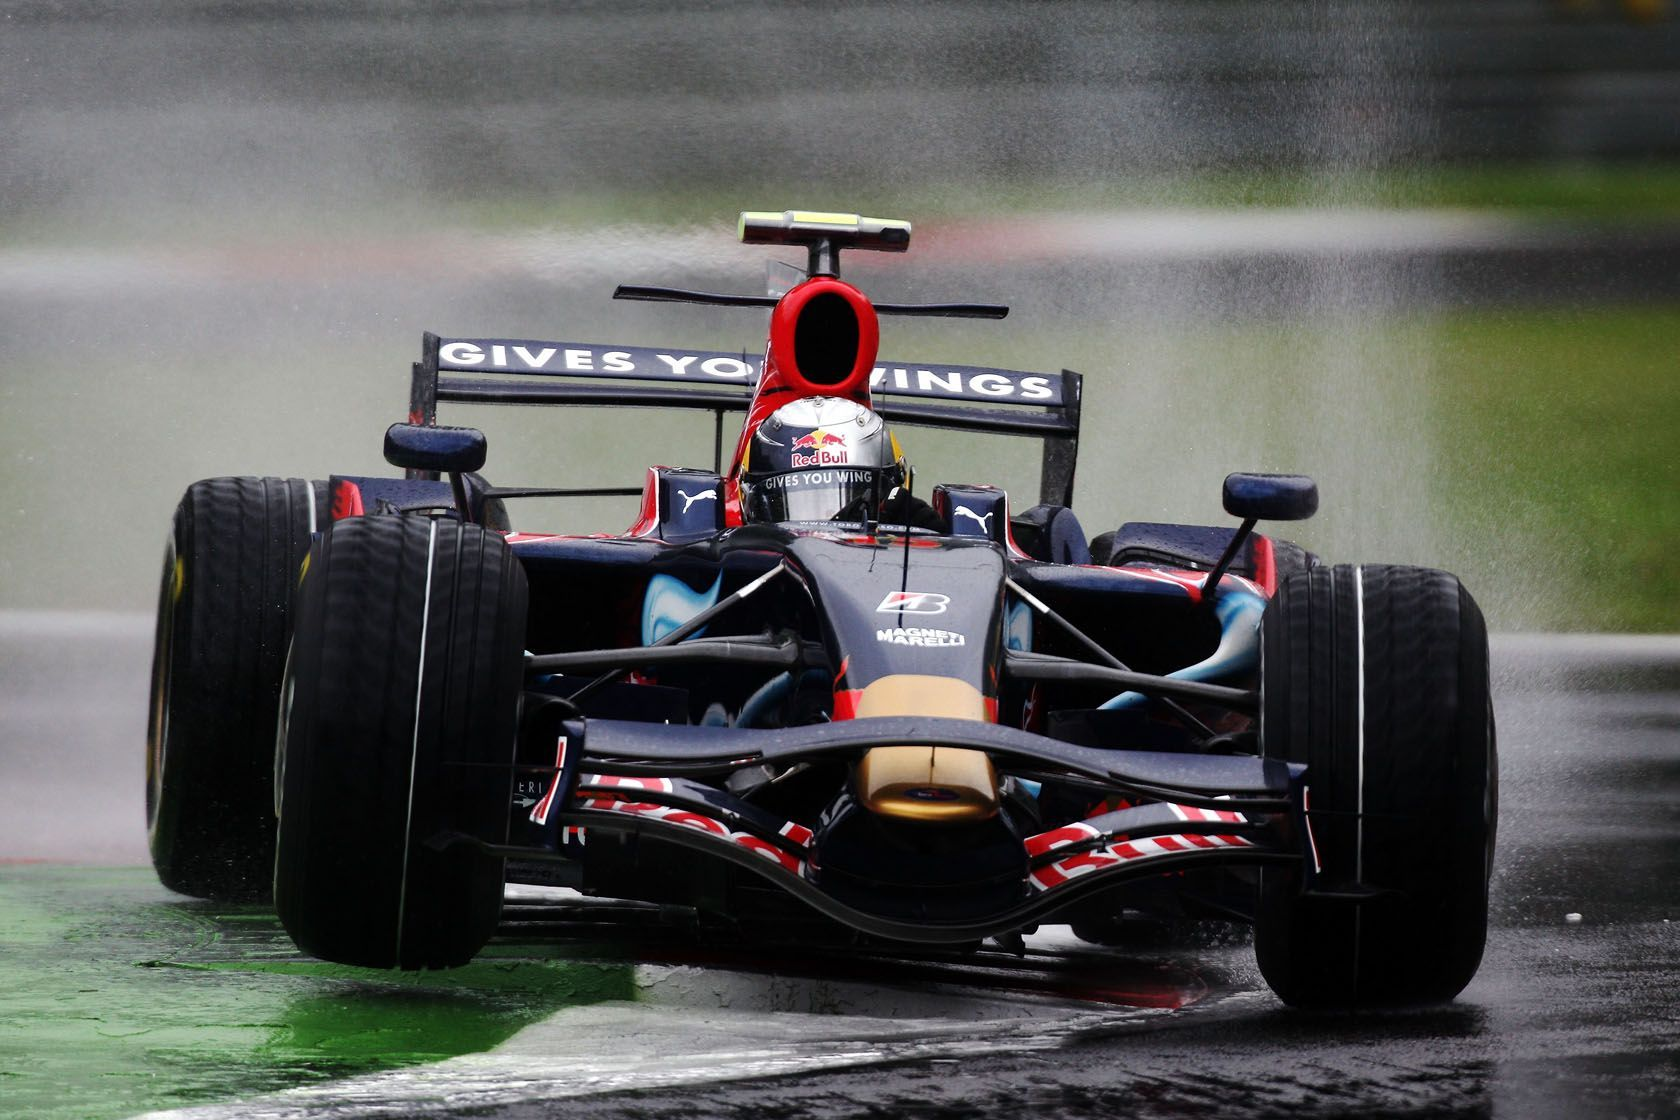 5 Formula 1 Cars That Surprisingly Won A Grand Prix (5 That Should Have, But Didn't)